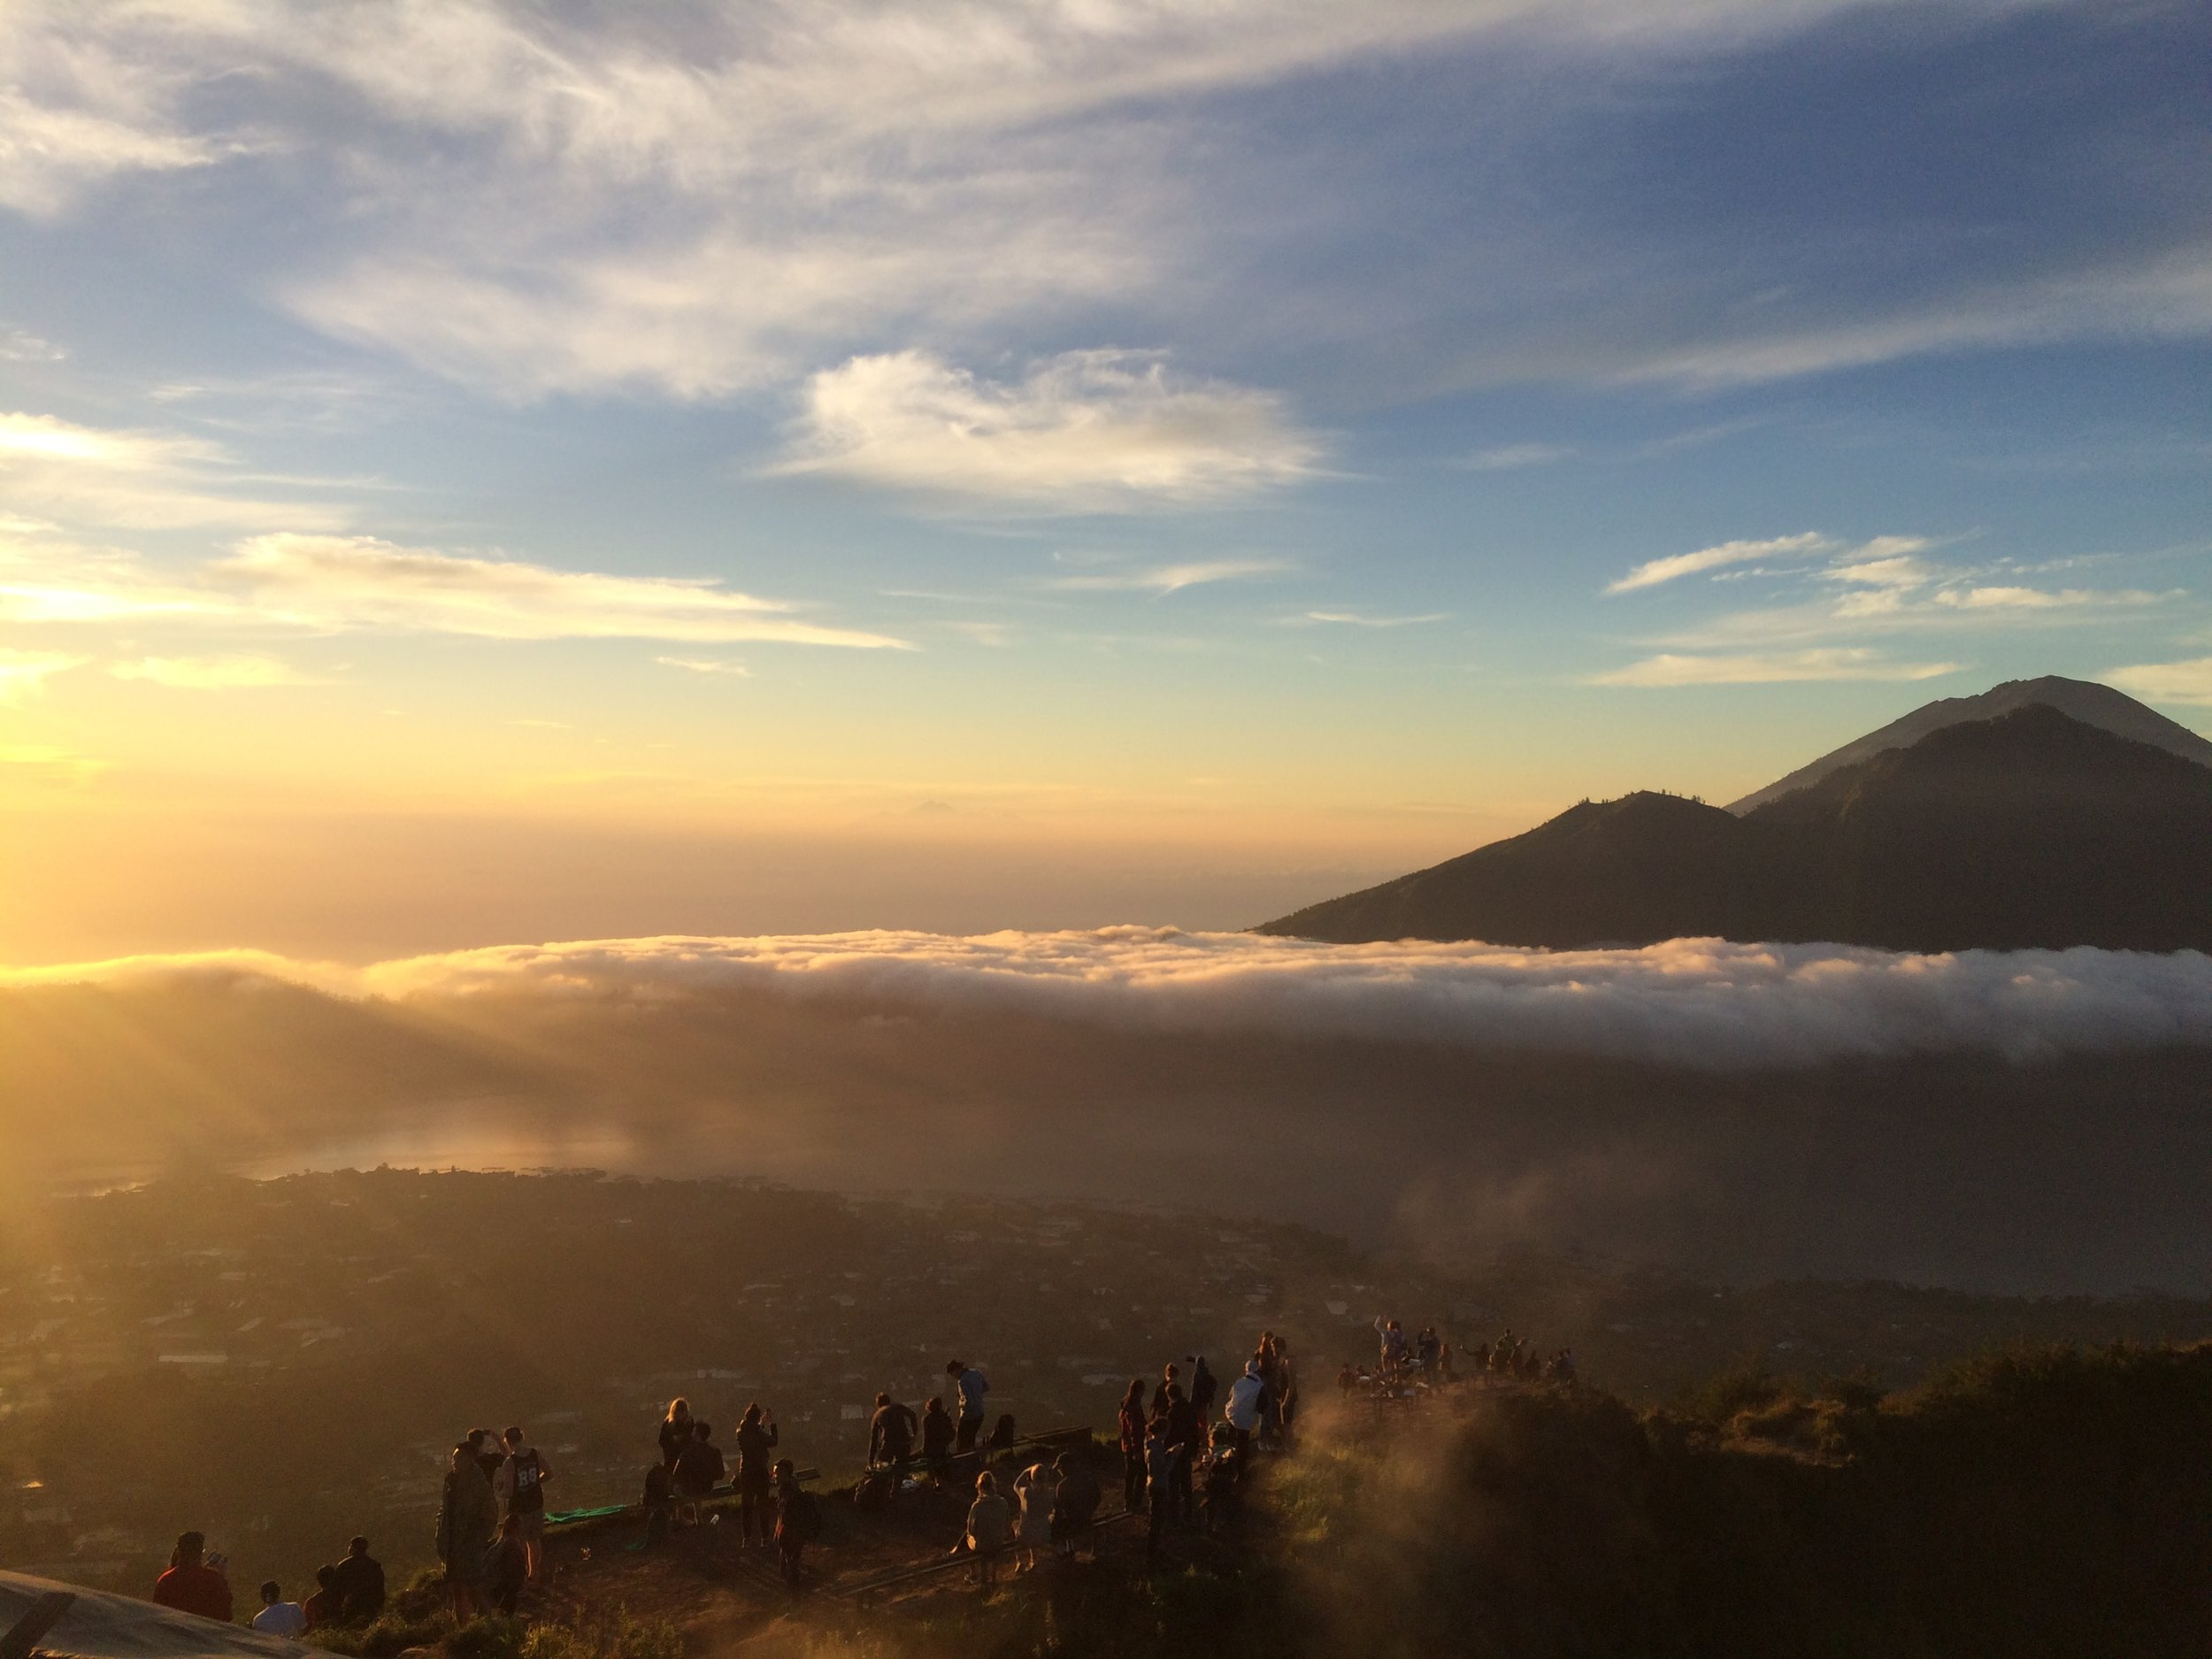 Sunrise hike to Mt. Batur -- check.